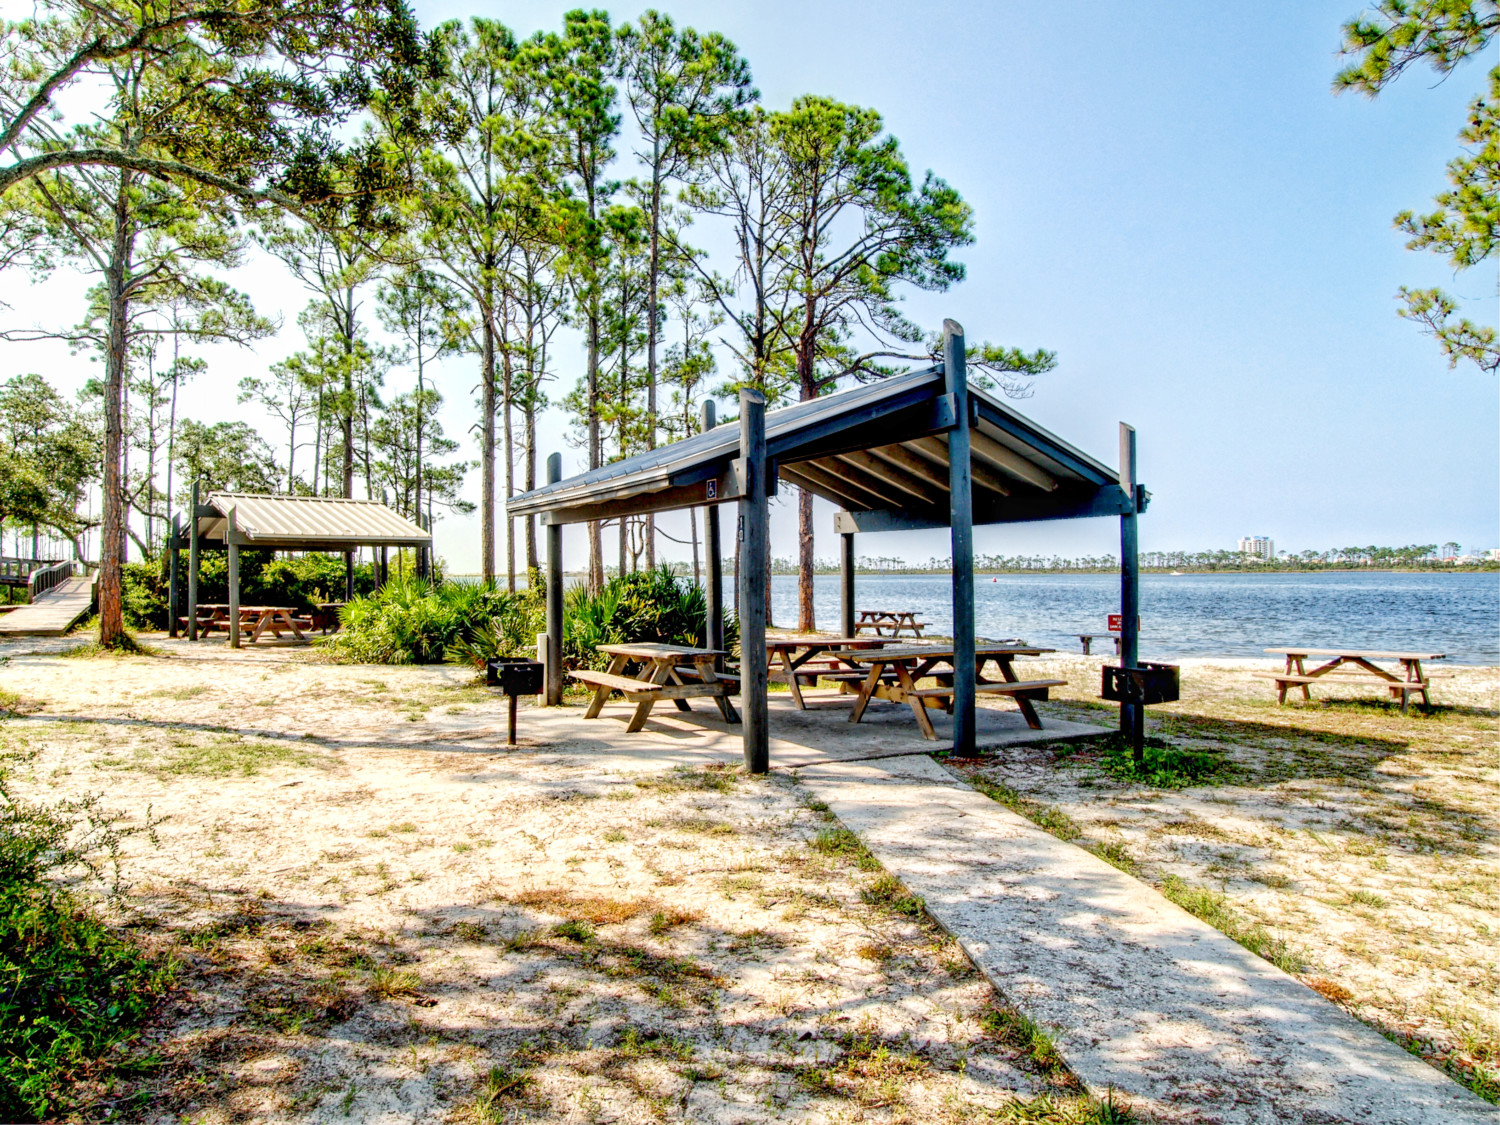 State Parks in Gulf Shores